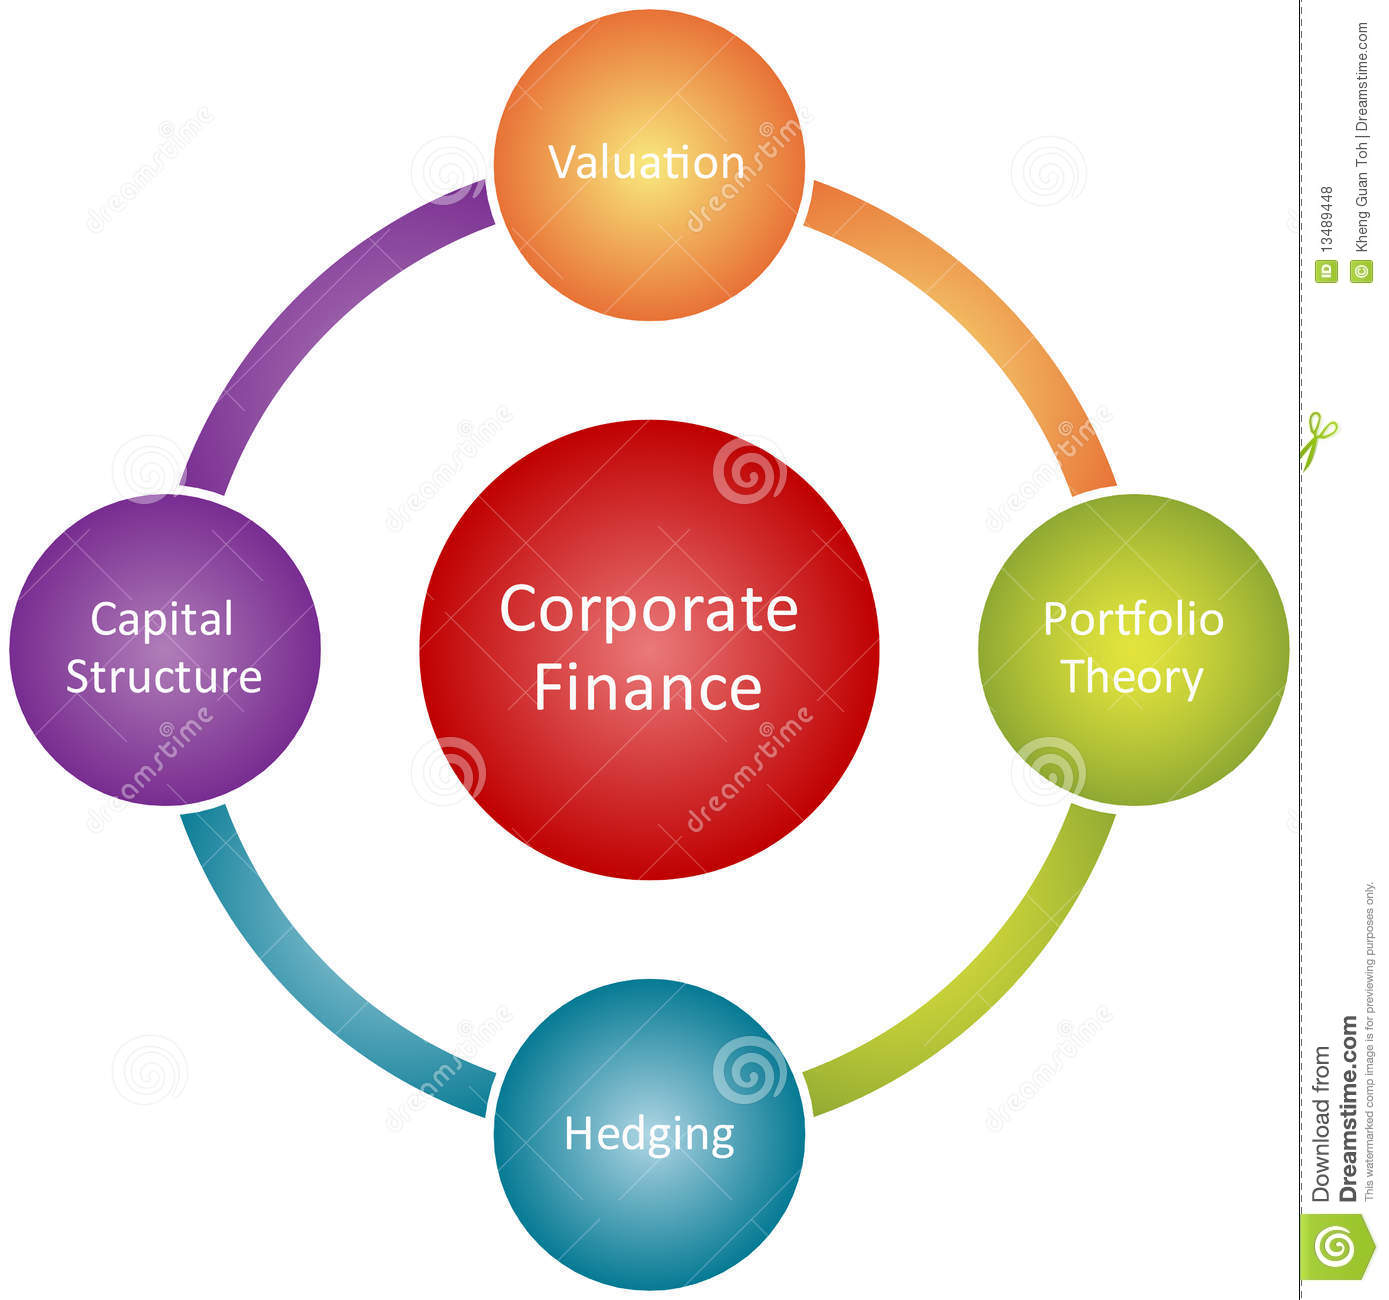 Corporate Finance Business Diagram Royalty Free Stock Photos.